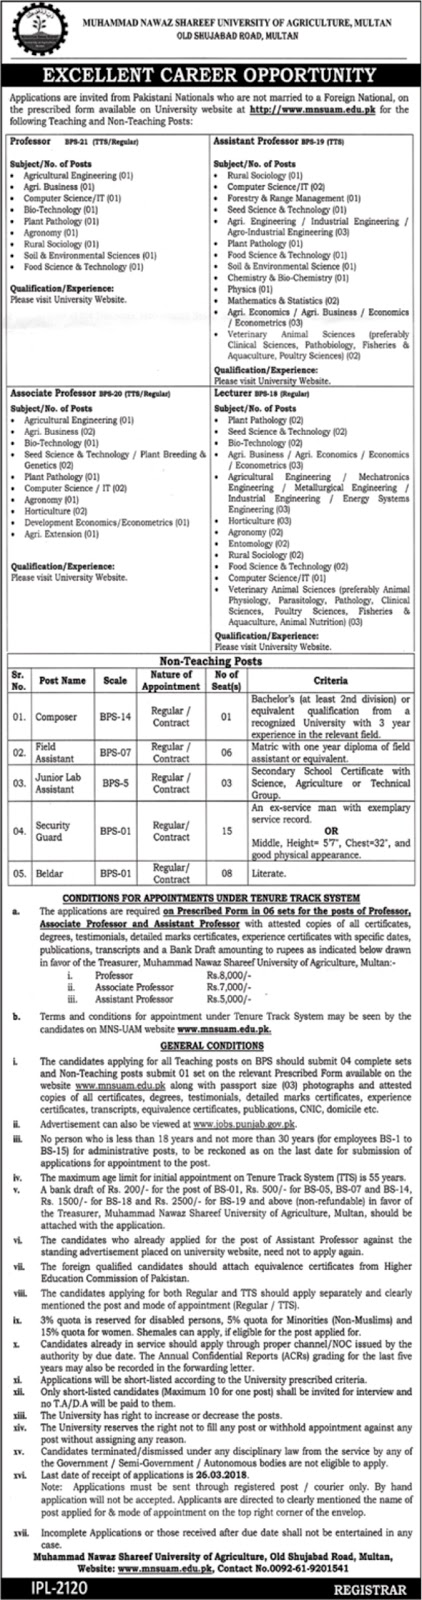 Latest Jobs in Mohammad Nawaz Sharif University of Agriculture Today 18 Feb 2018